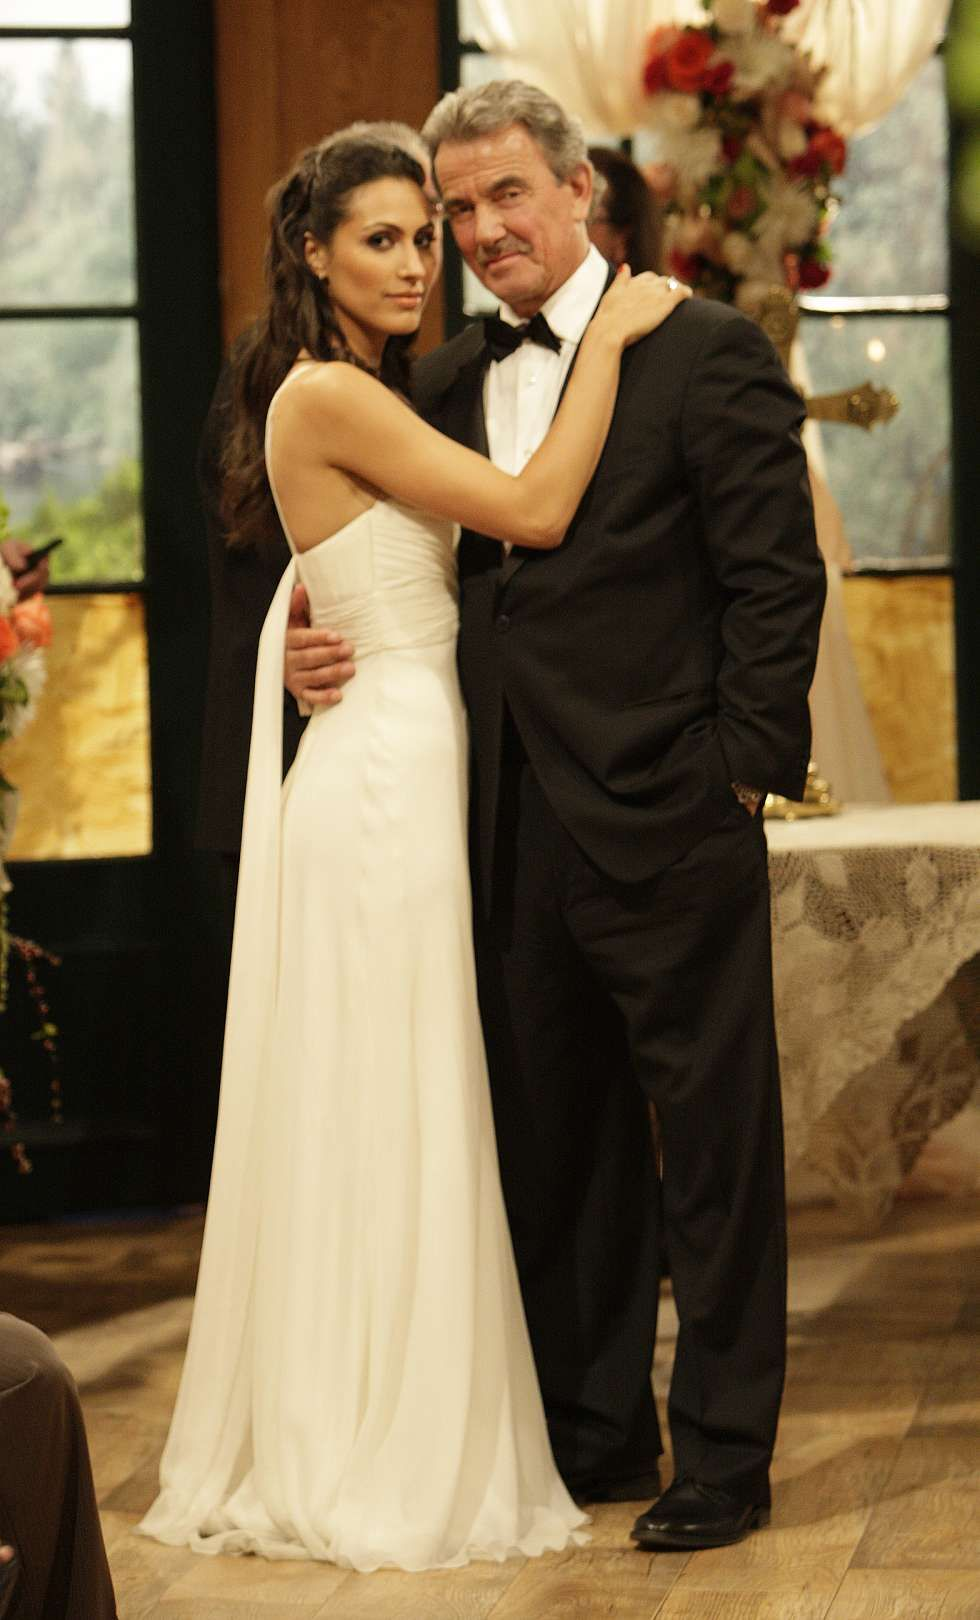 Victor and Sabrina Young and the restless, Tv weddings